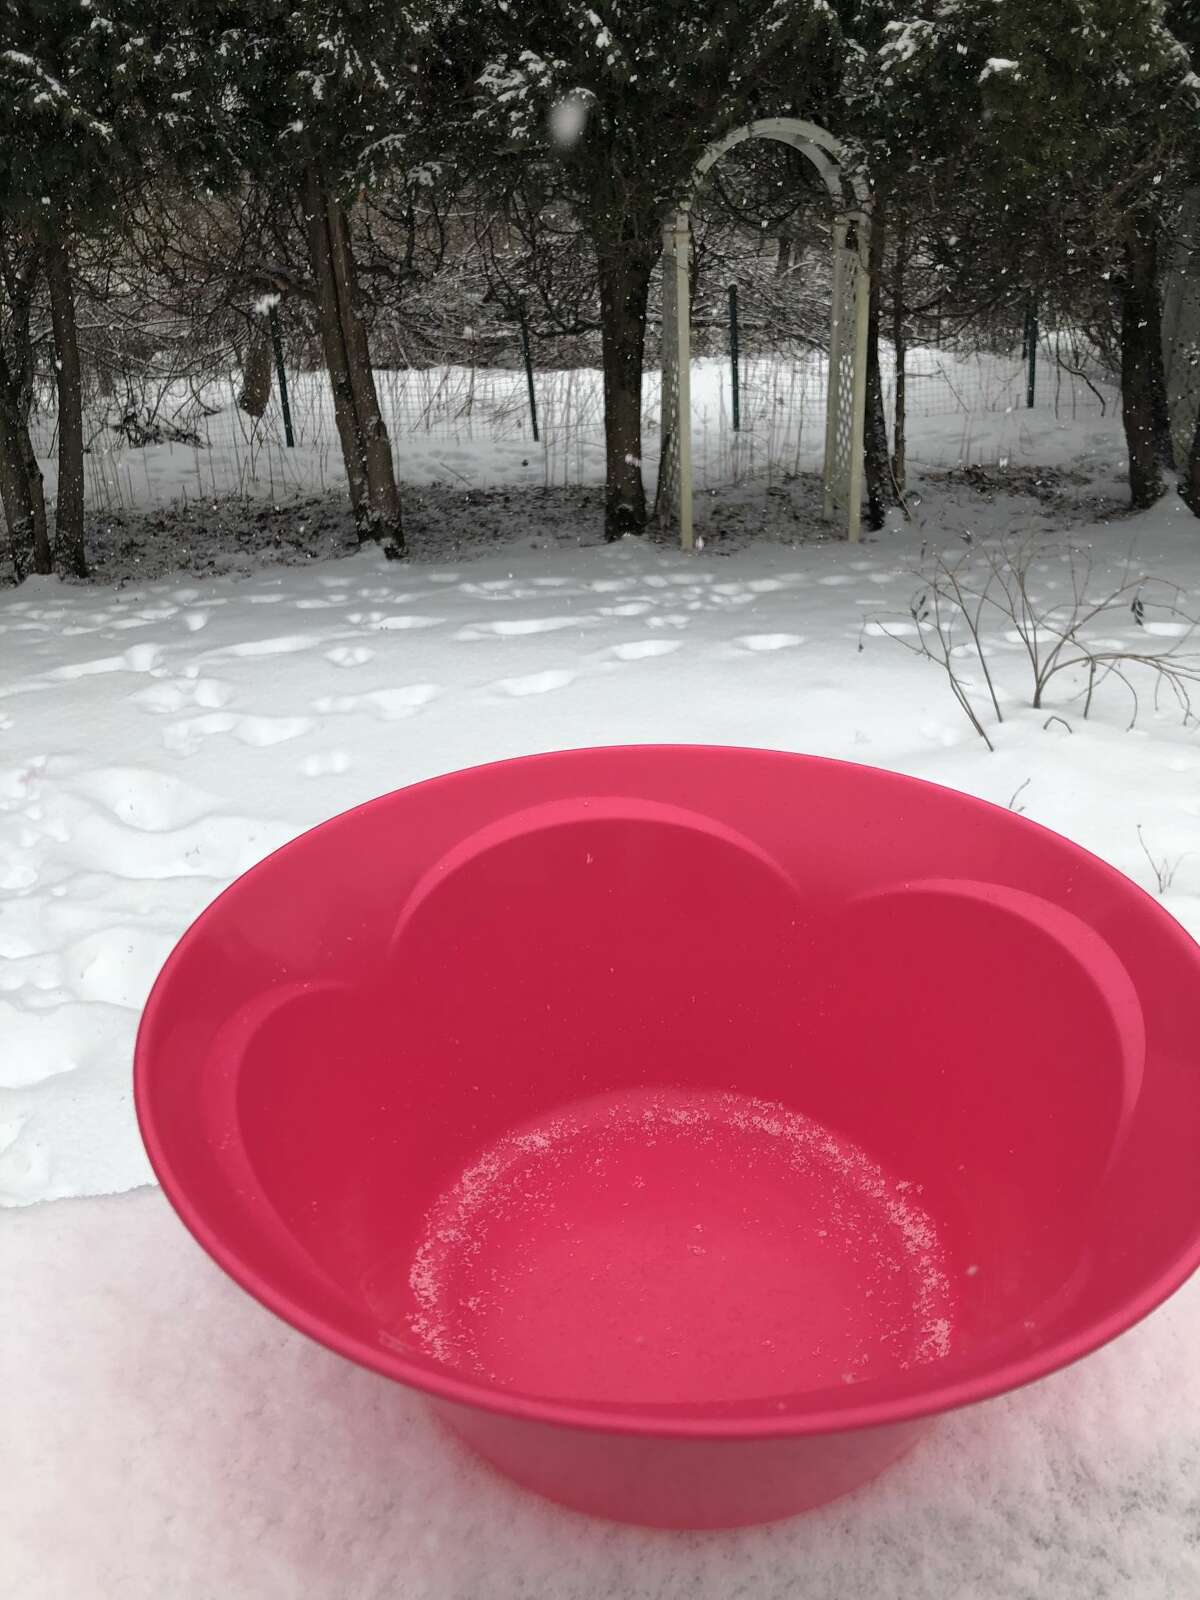 Place a large bowl on an outdoor table or surface as the snow begins to fall.